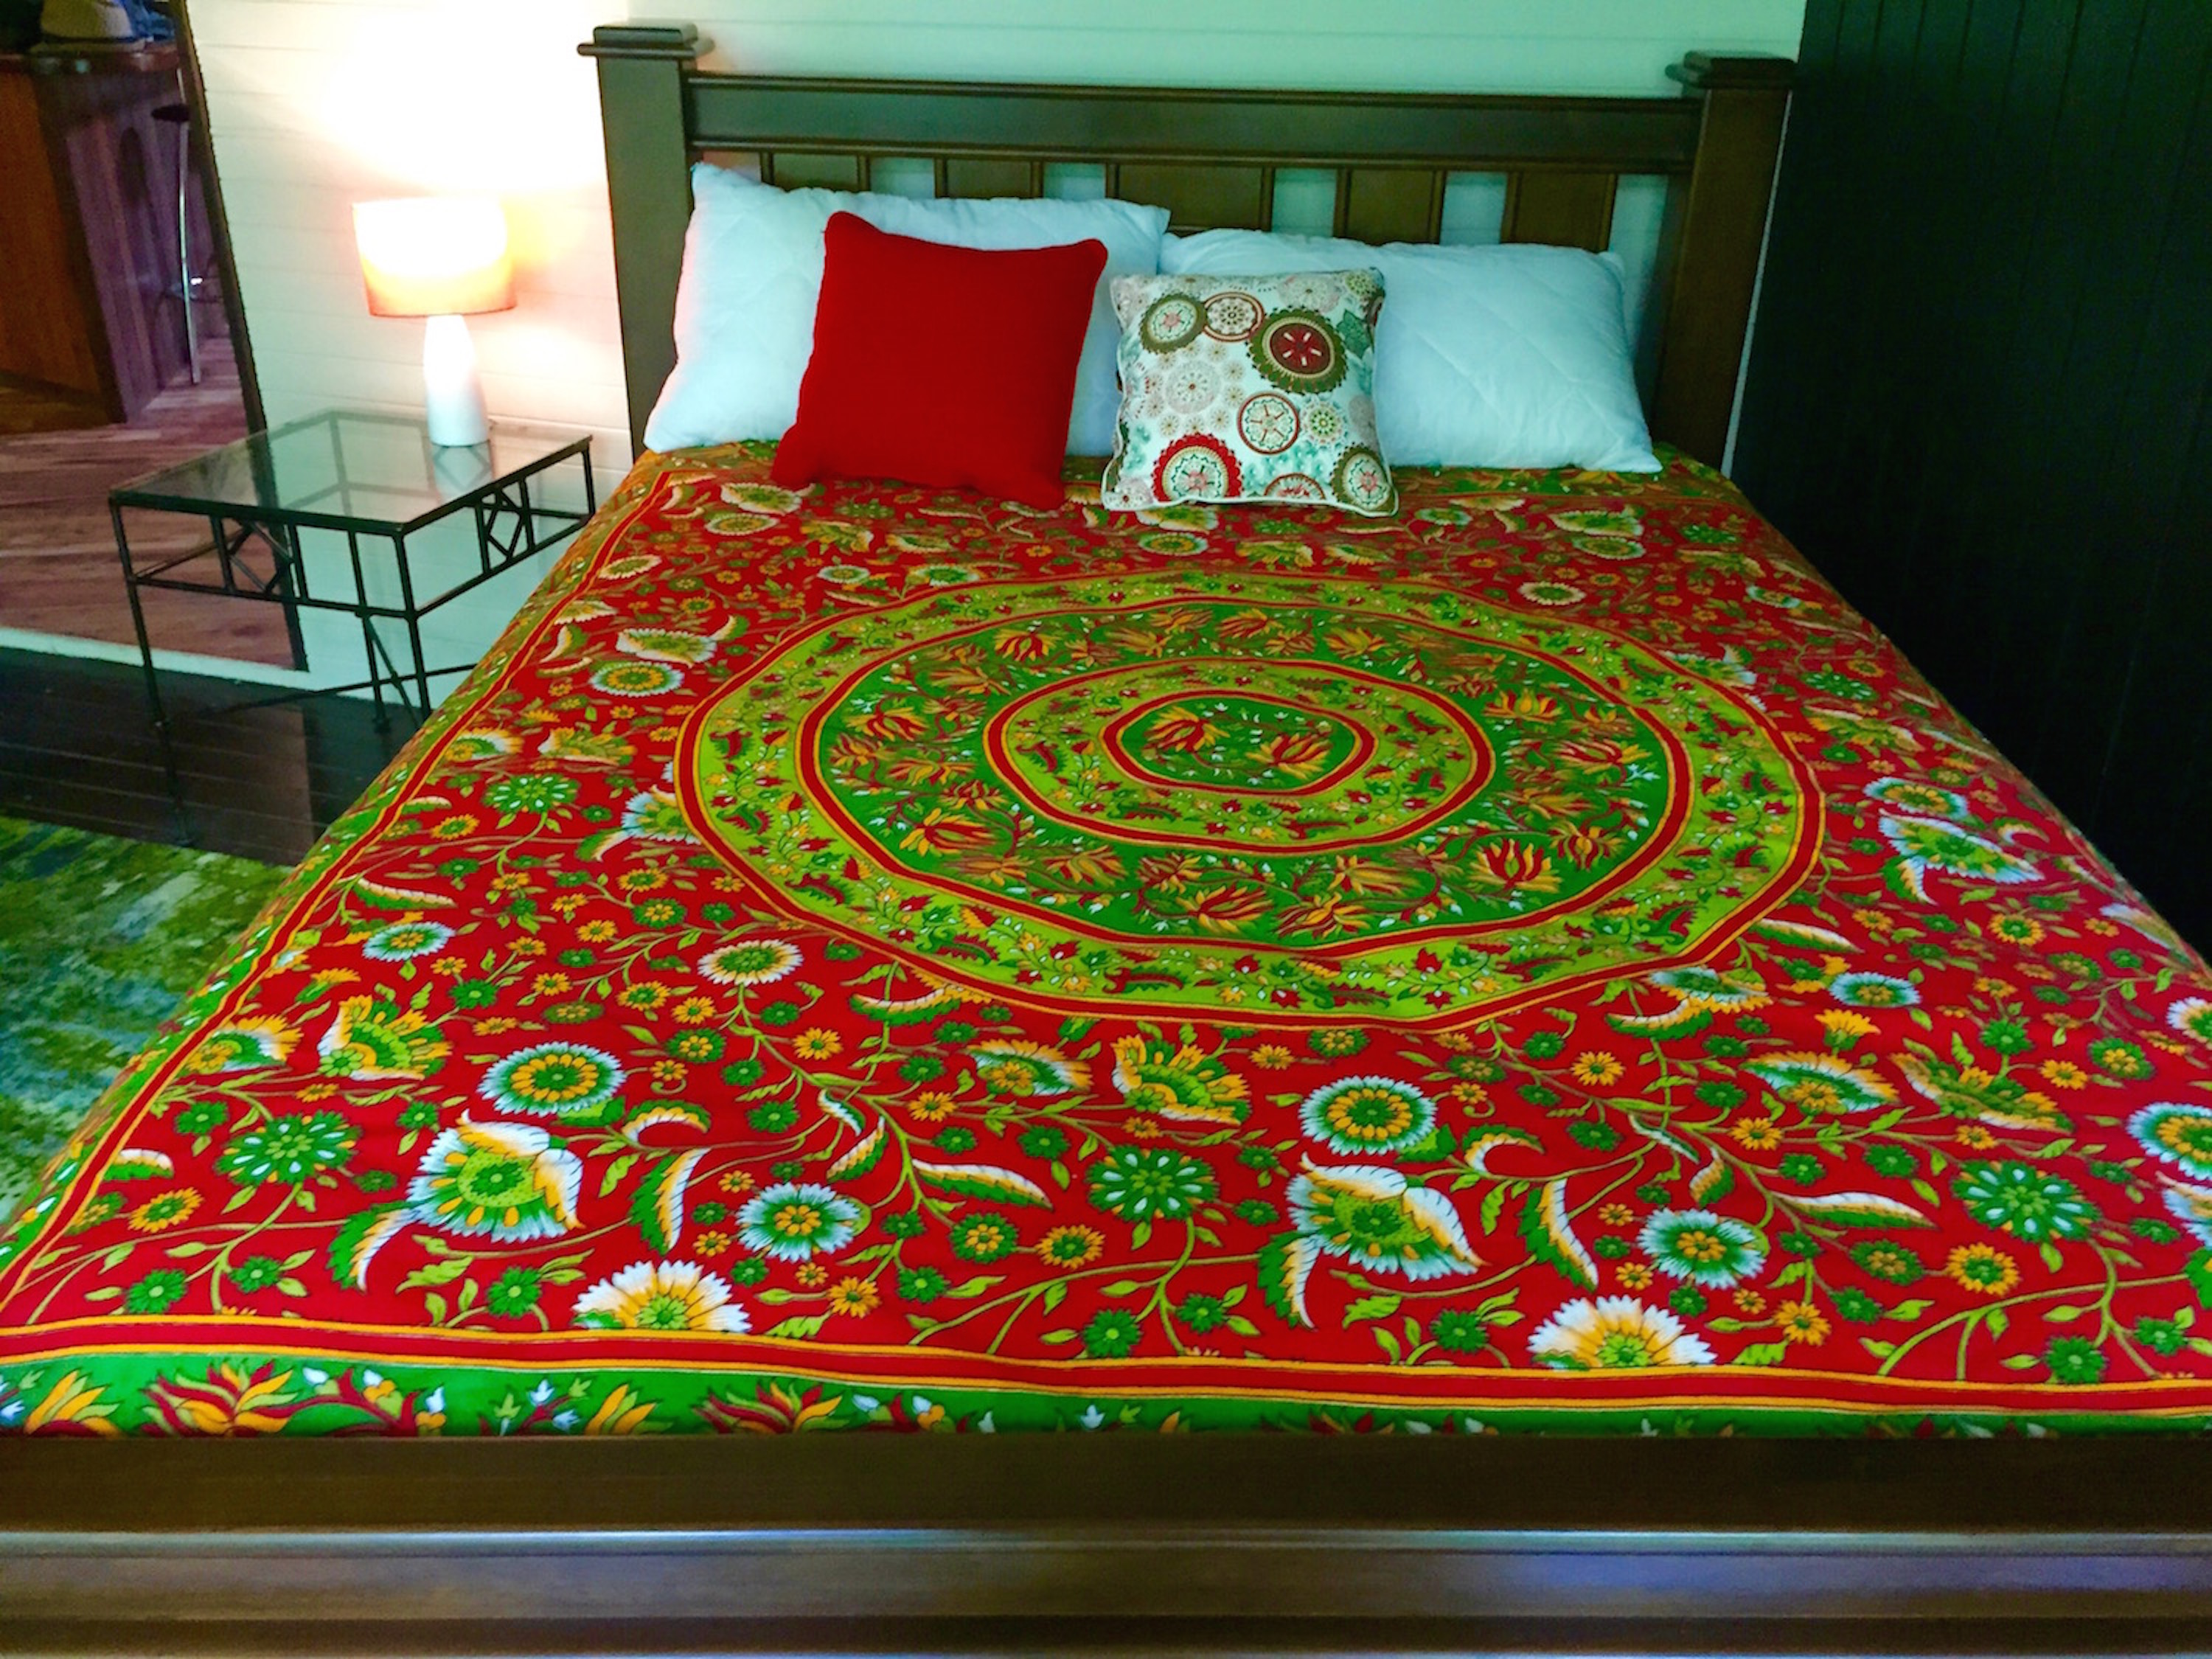 Bed with red cover